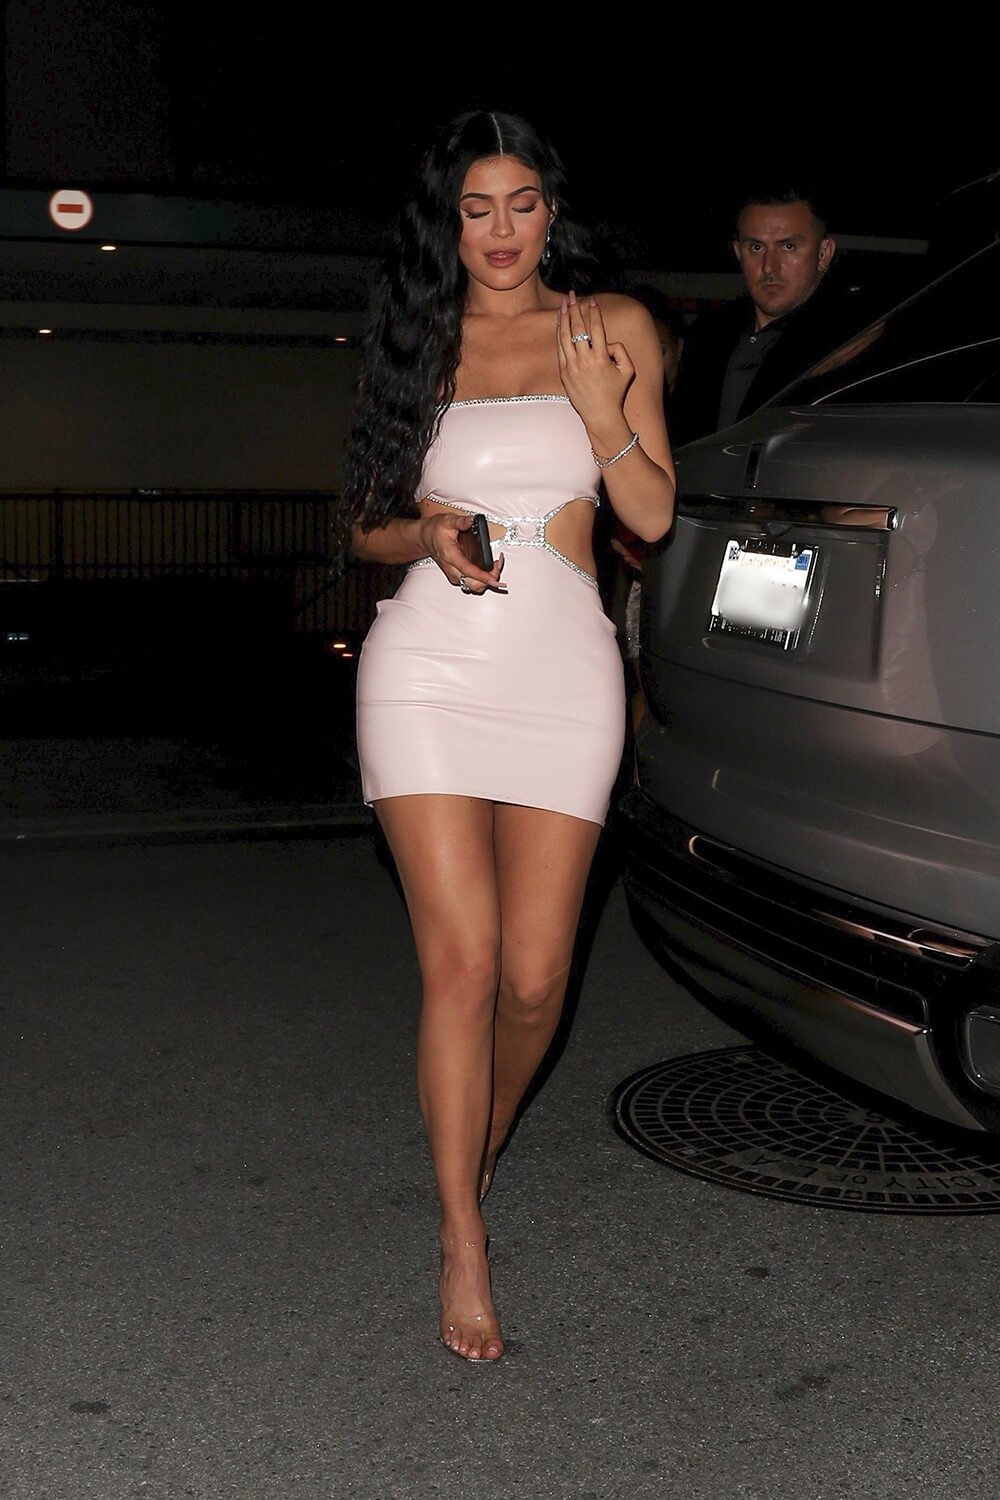 Kylie Jenner leaving the launch of her new skincare line event